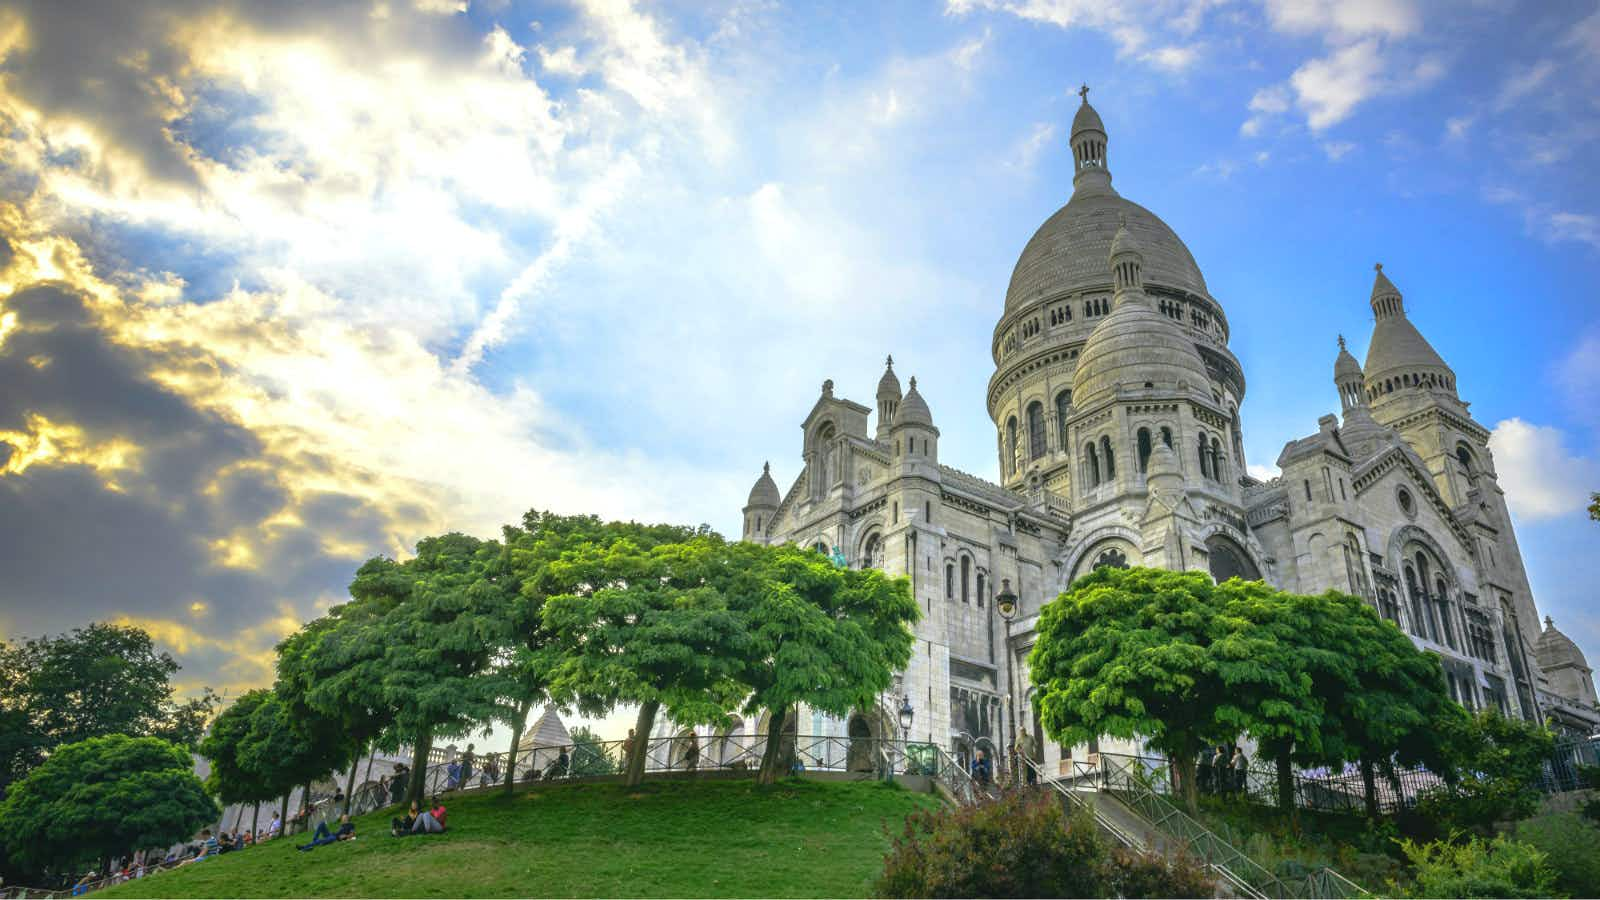 Sacre-Coeur Basilica just before sunset with people sitting on grass in square Louise Michel